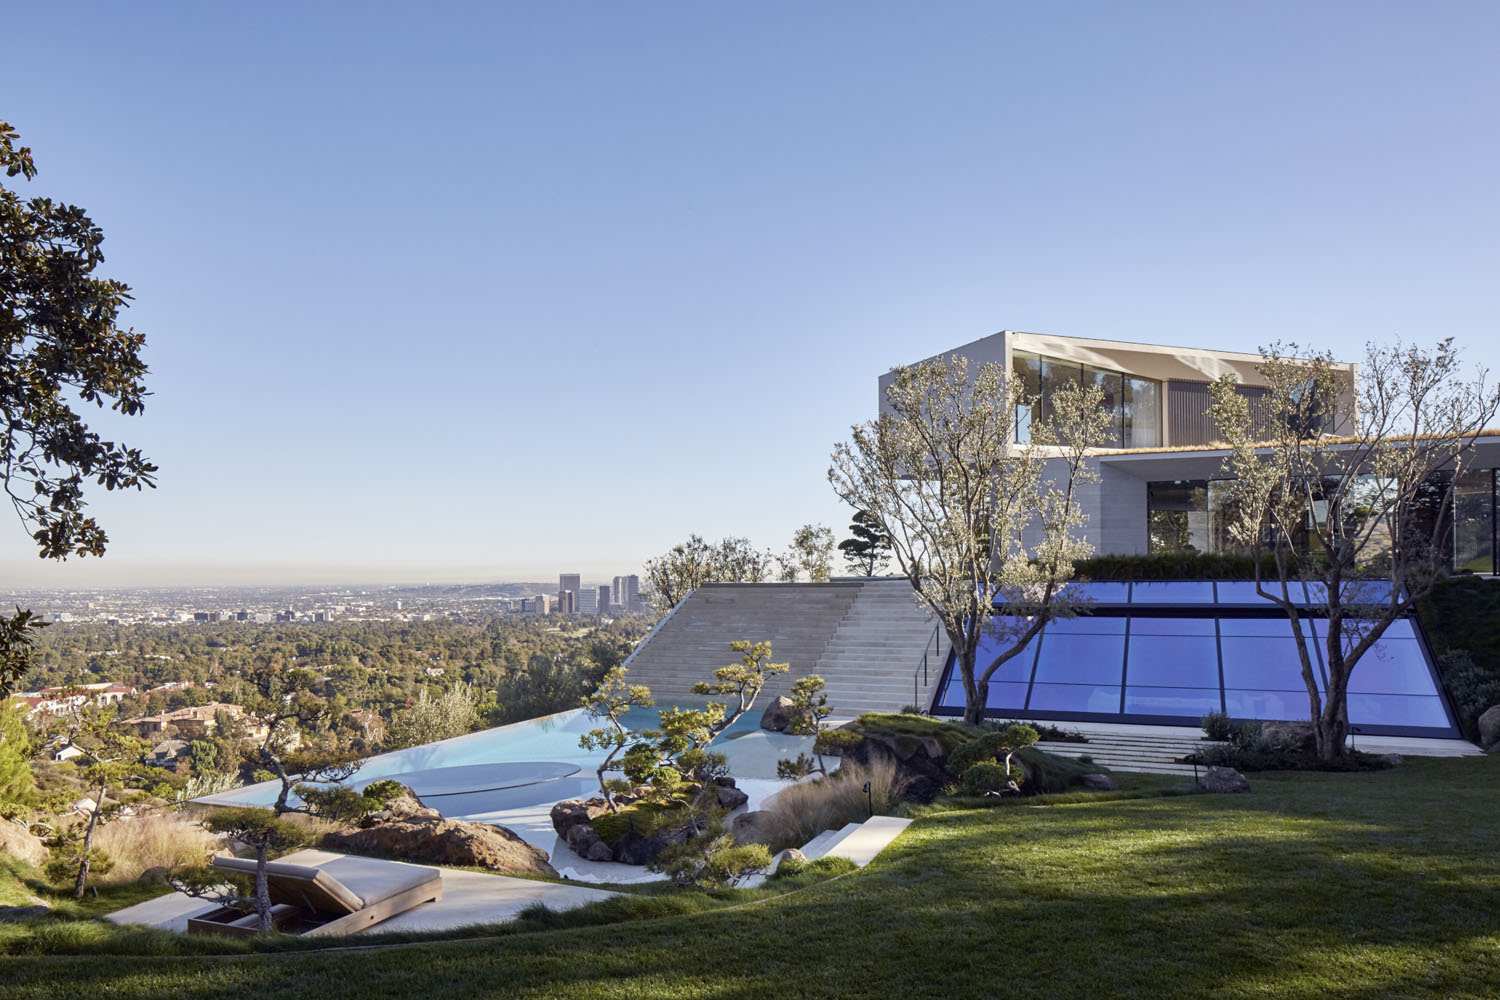 los angeles hillside villa retreat with daring modern architecture